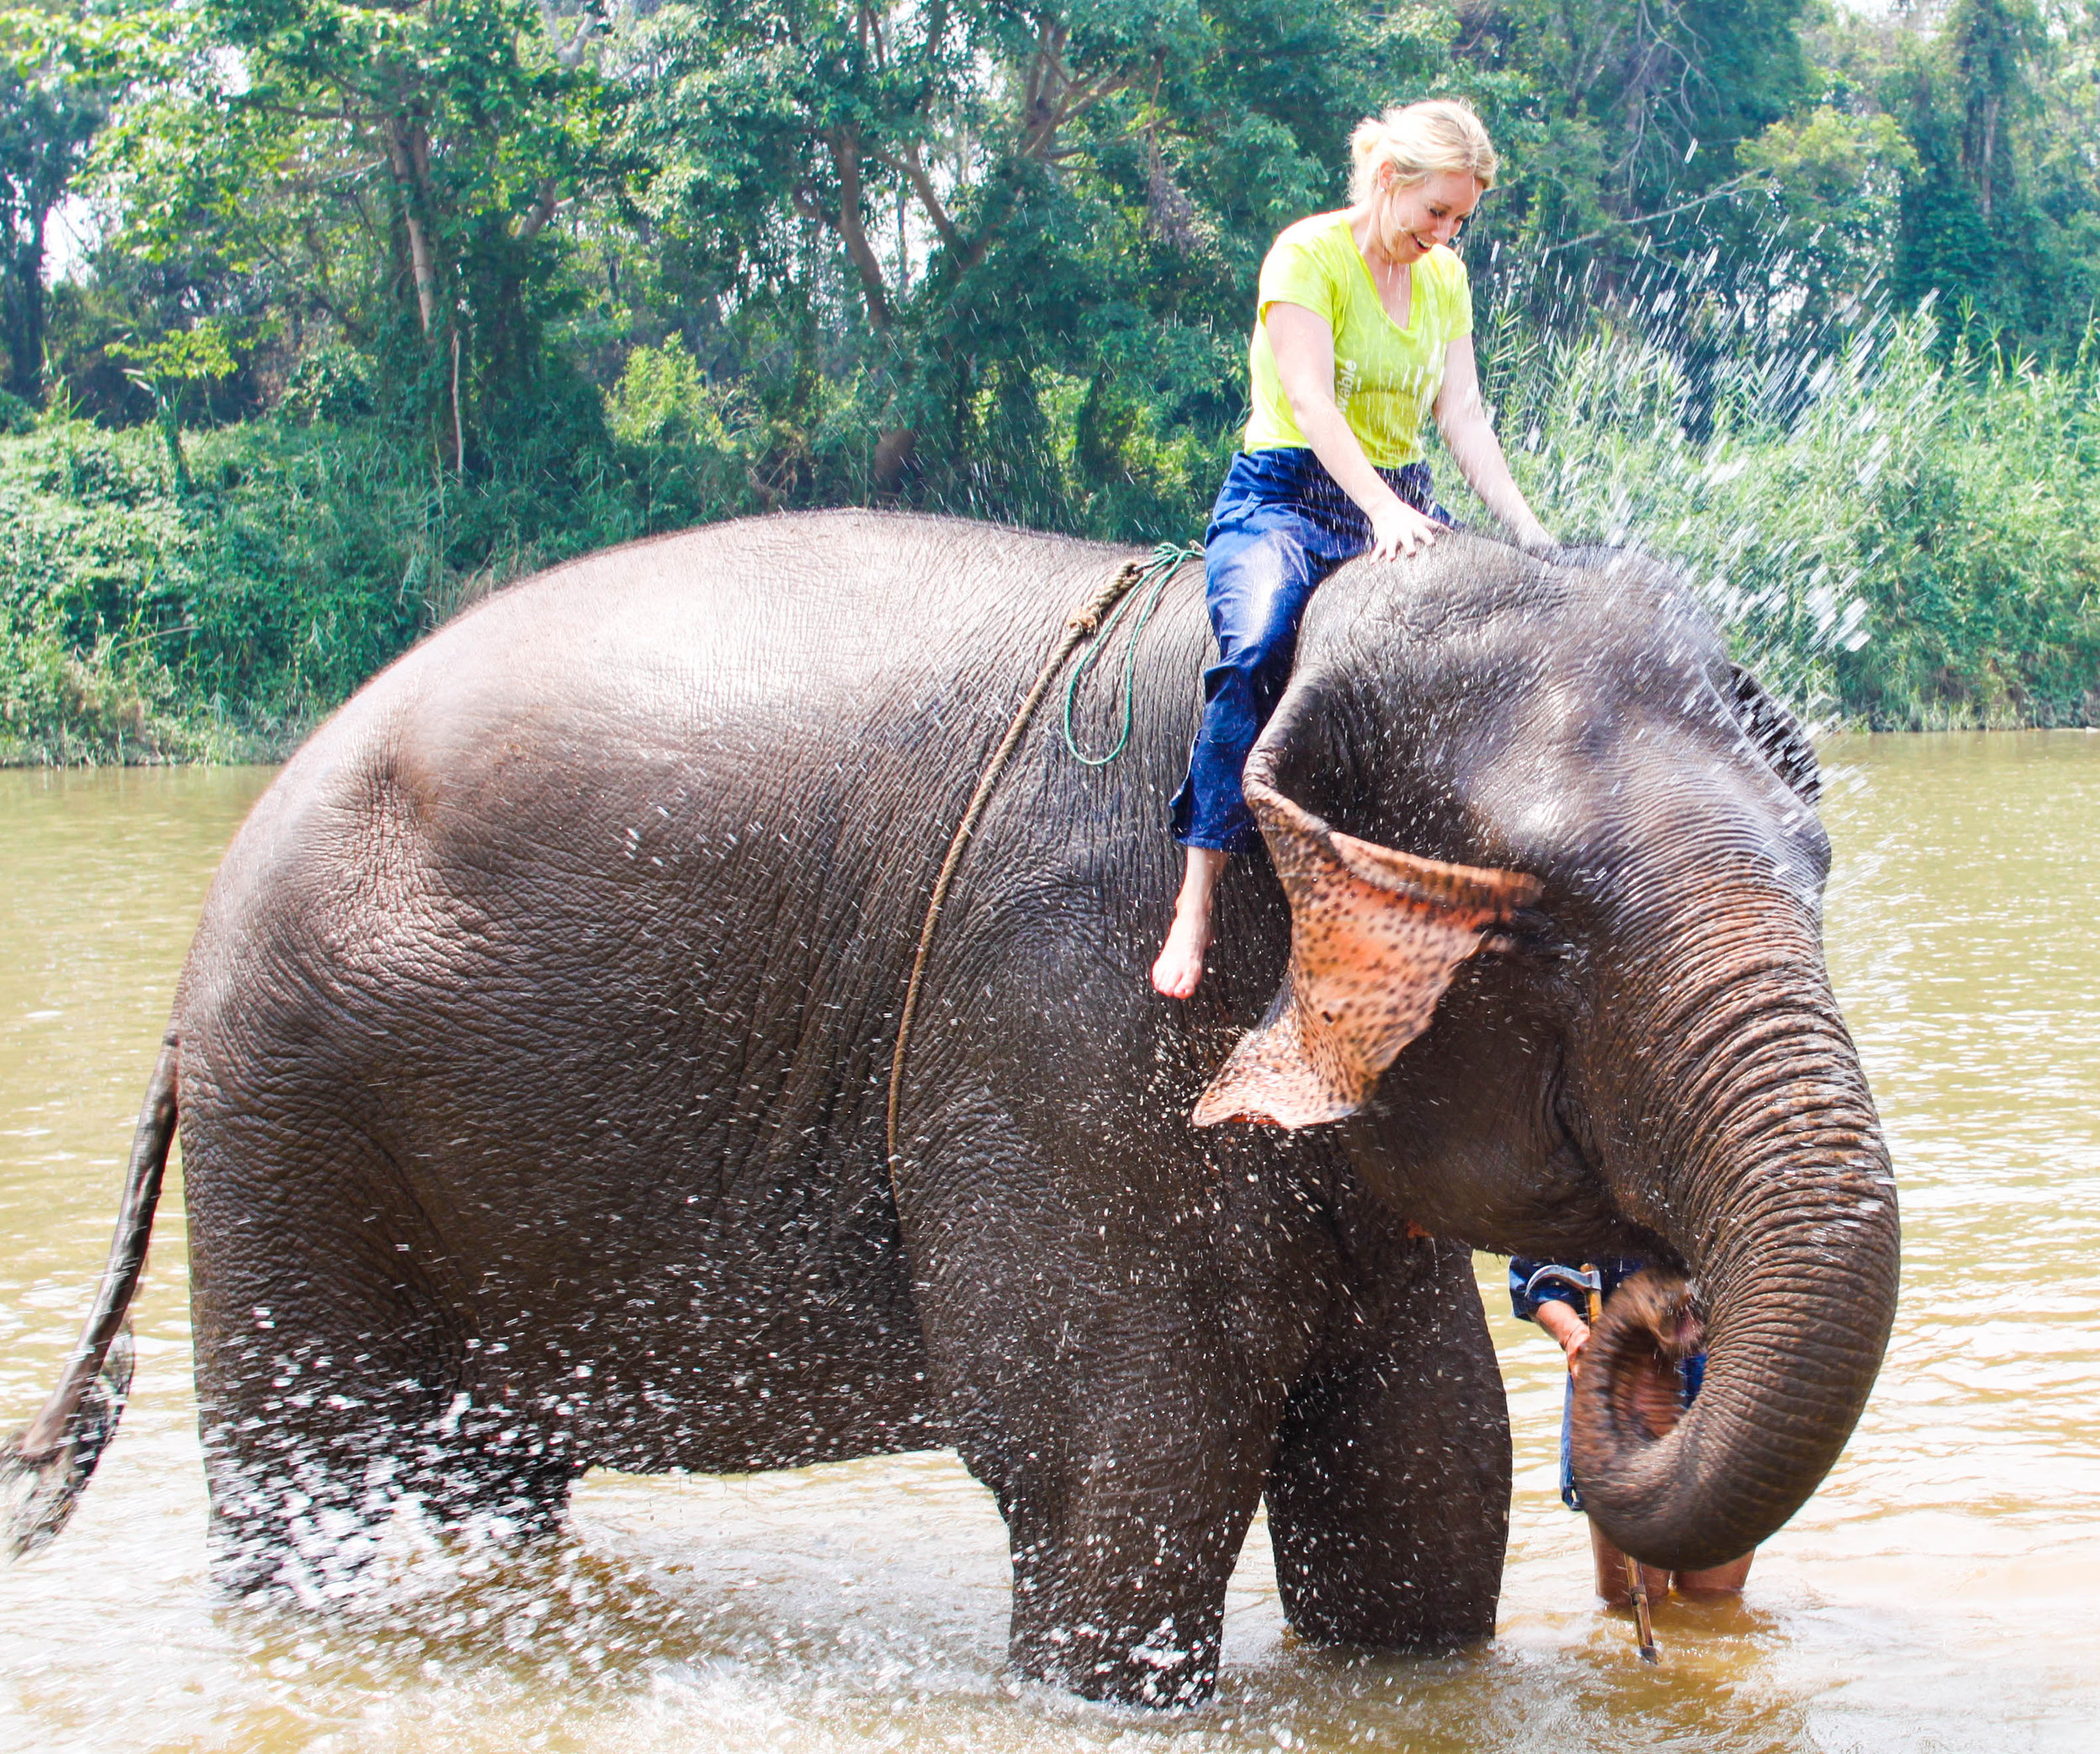 A true once-in-a-lifetime experience: mahout training at the Anantara Golden Triangle